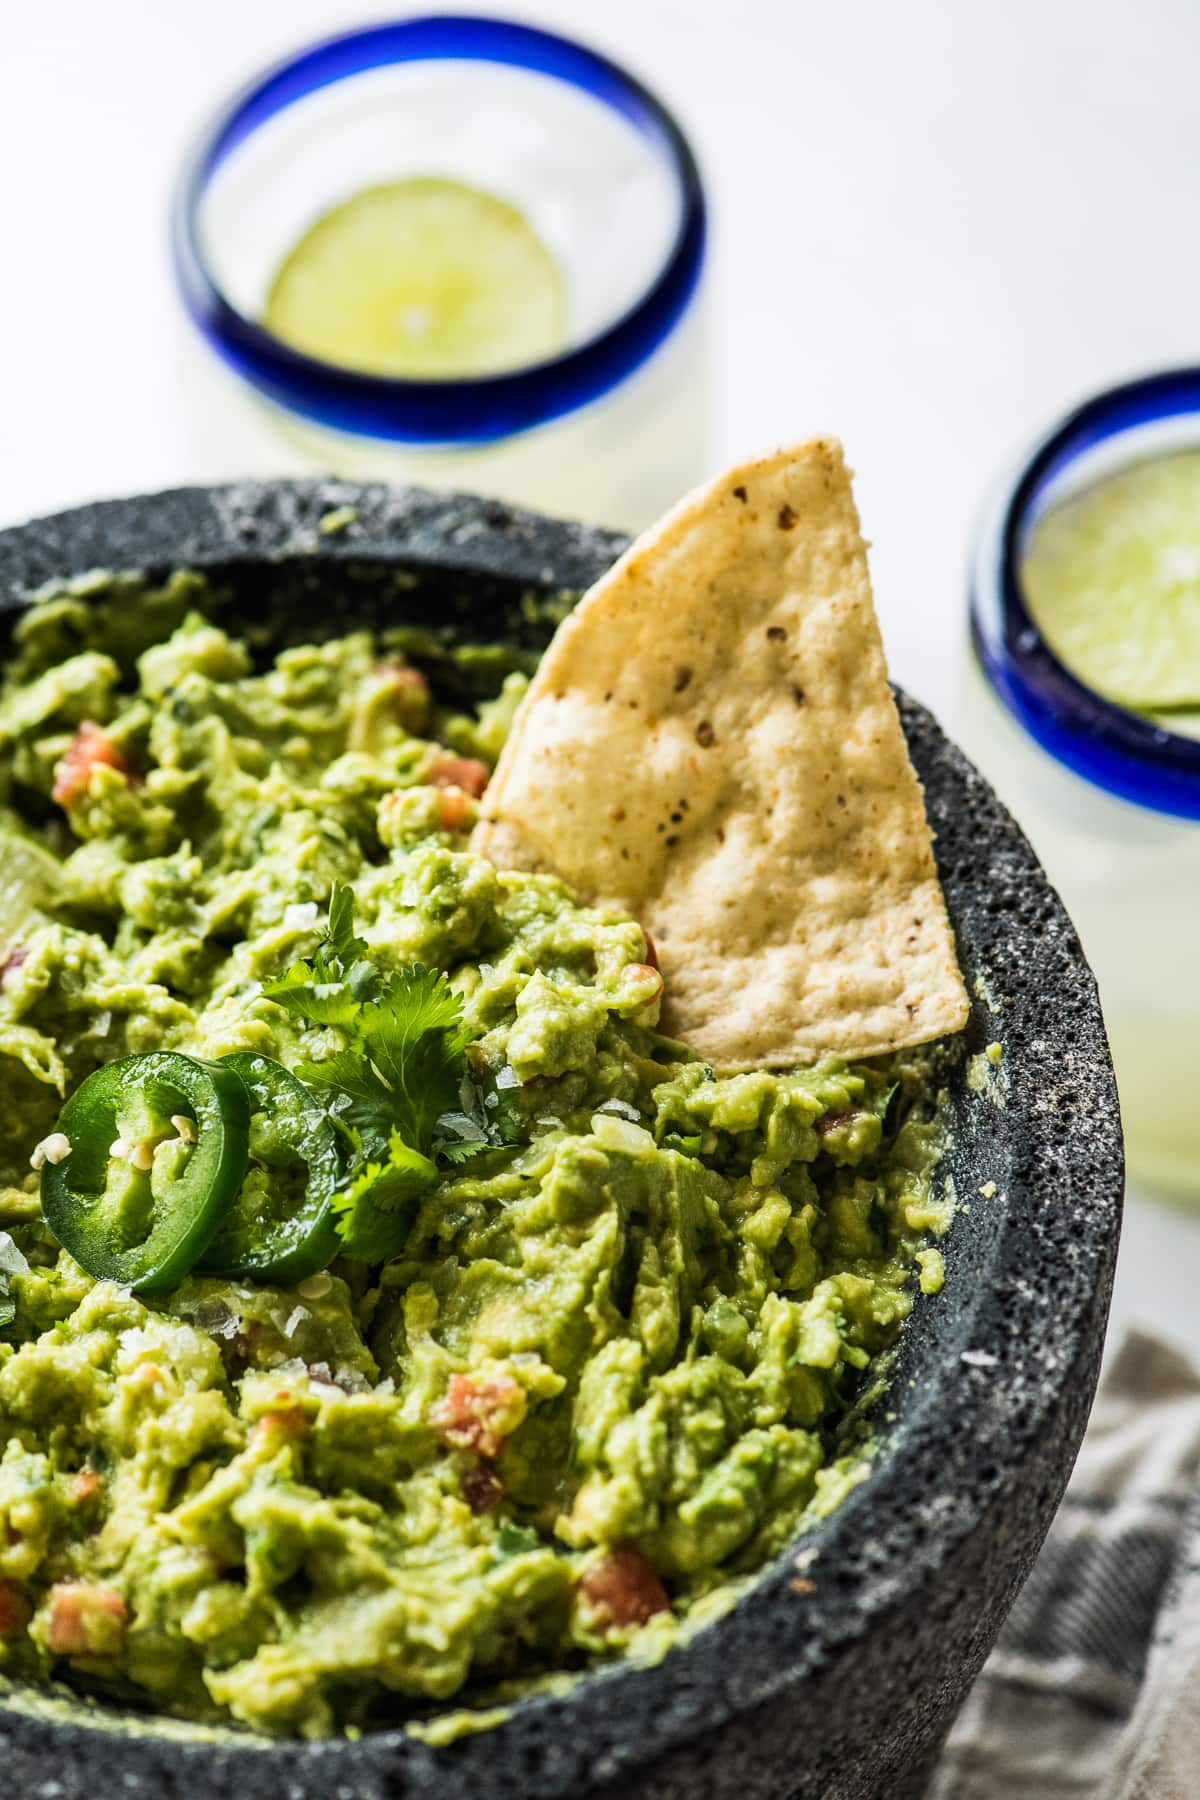 A simple guacamole recipe garnished with cilantro and jalapenos.